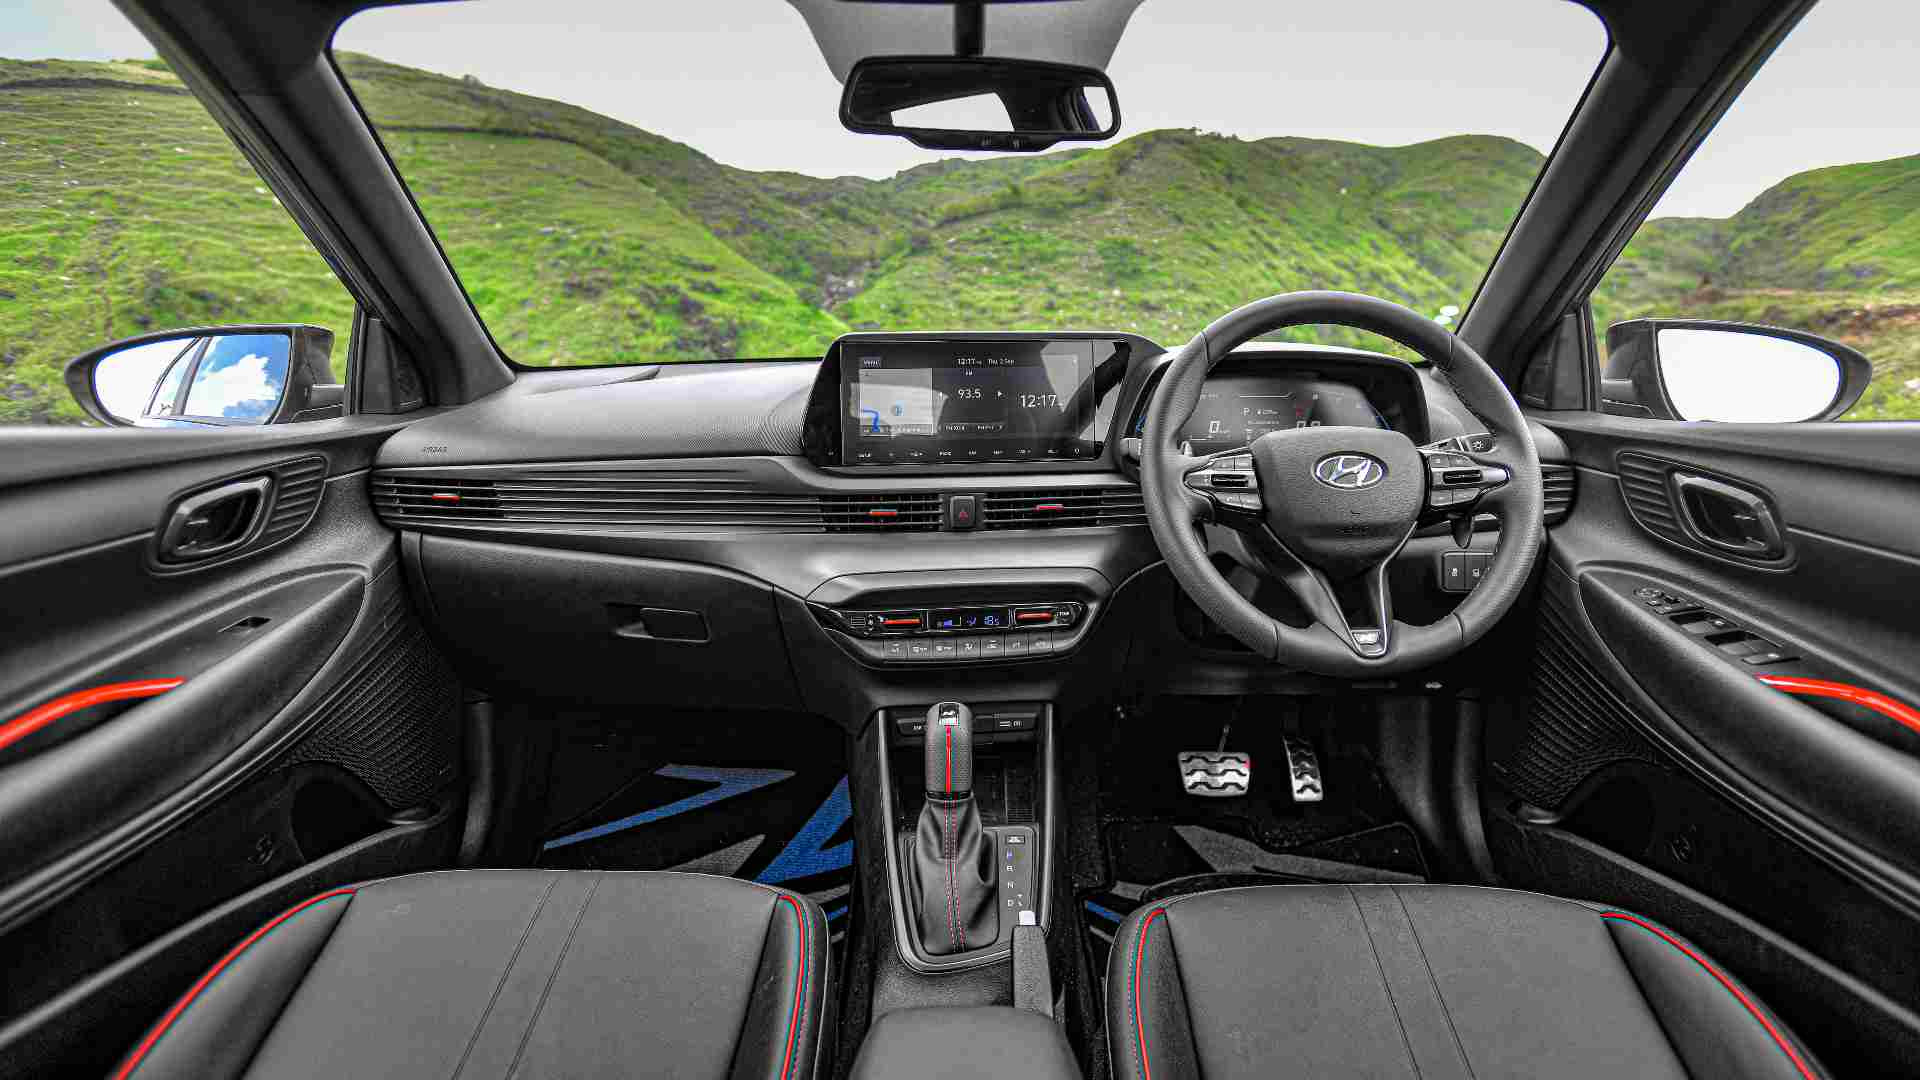 Darkened interior theme with red accents thrown in lends the N Line's insides a sporty, premium vibe. Image: Hyundai